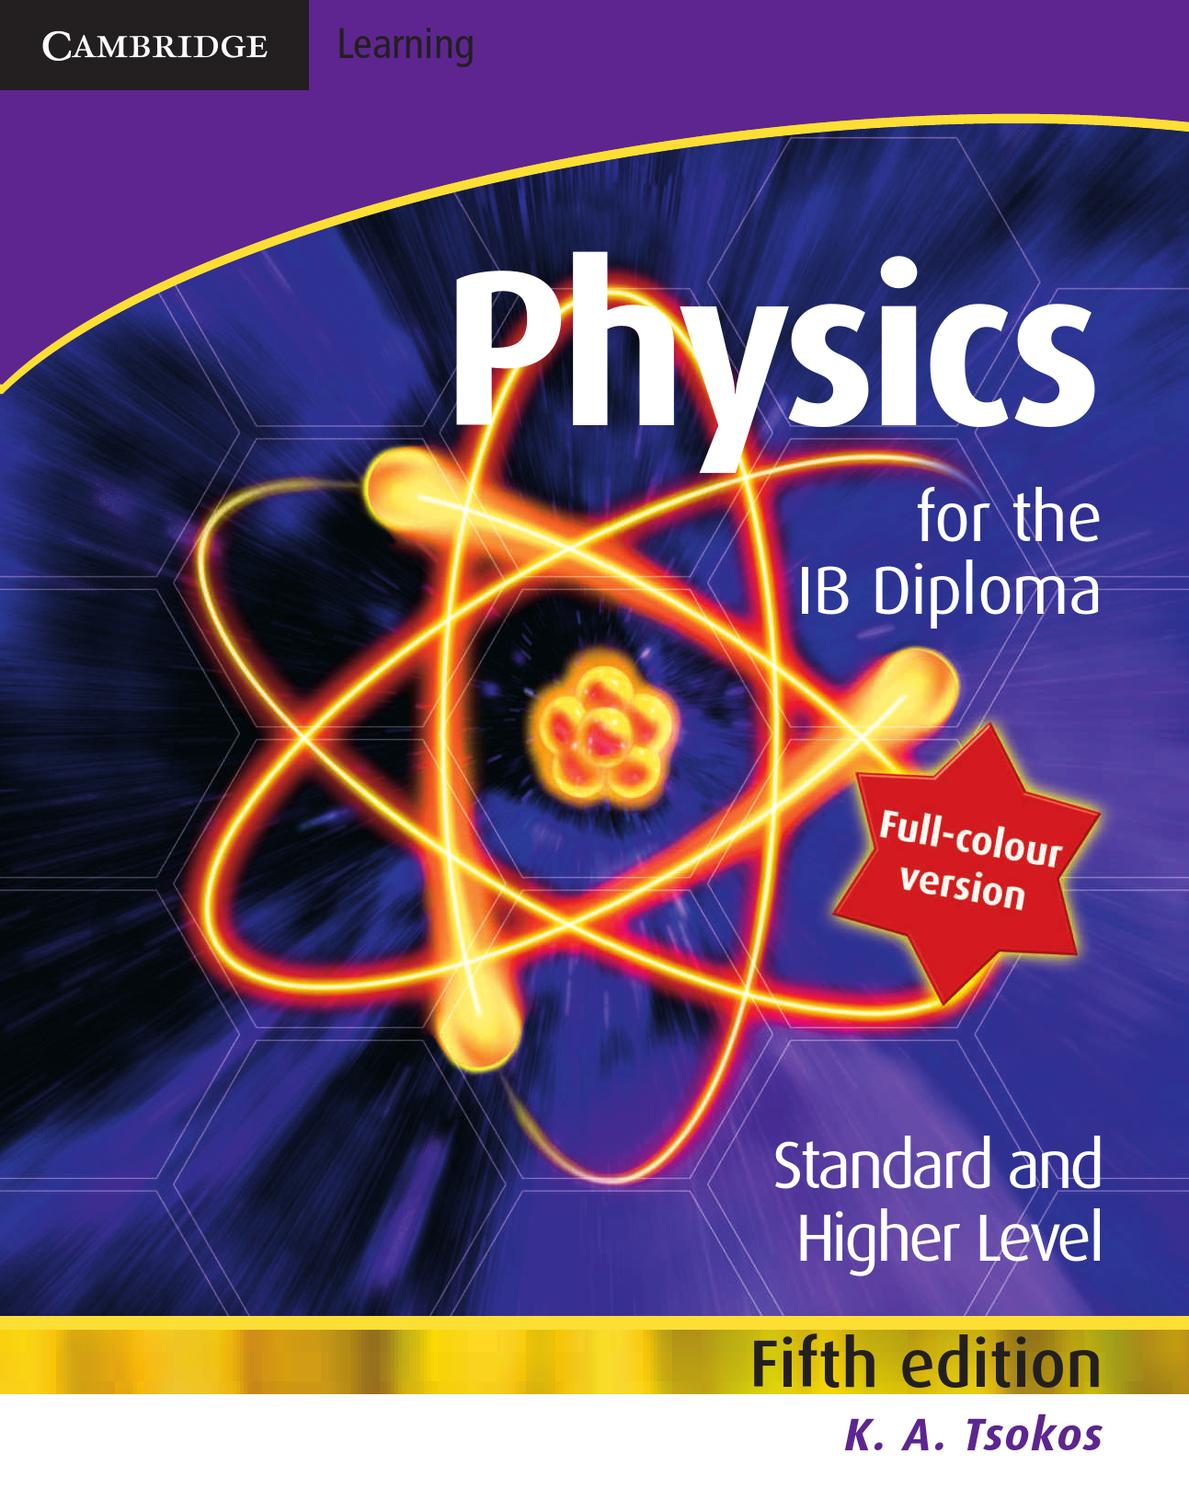 Physics for the IB Diploma (fifth edition) by Cambridge University